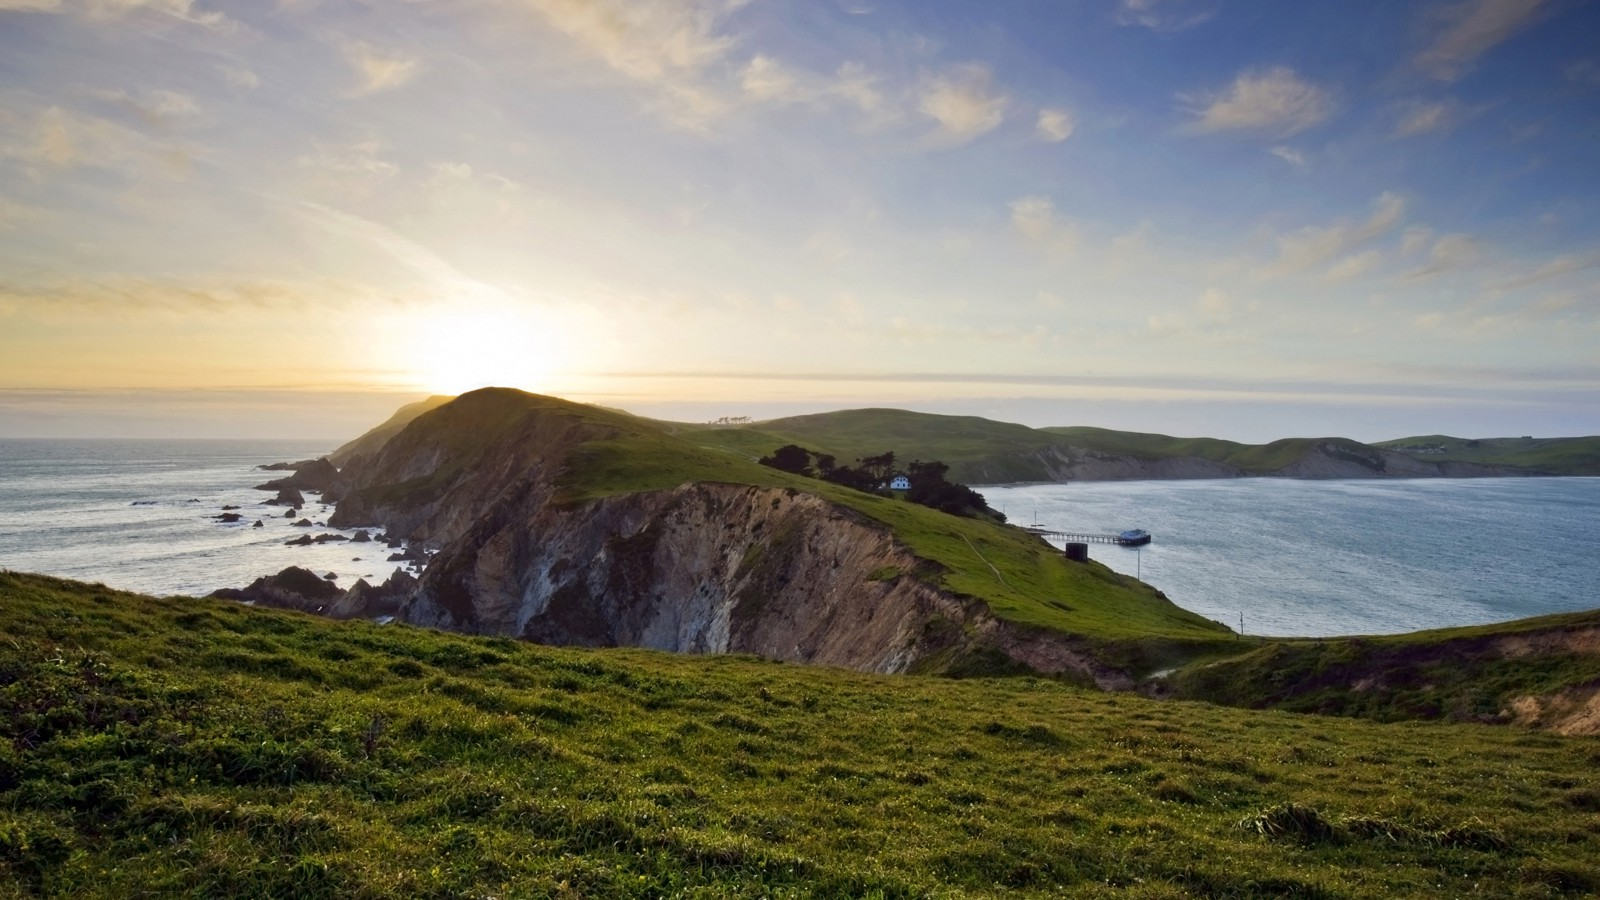 Point Reyes National Seashore, California coast